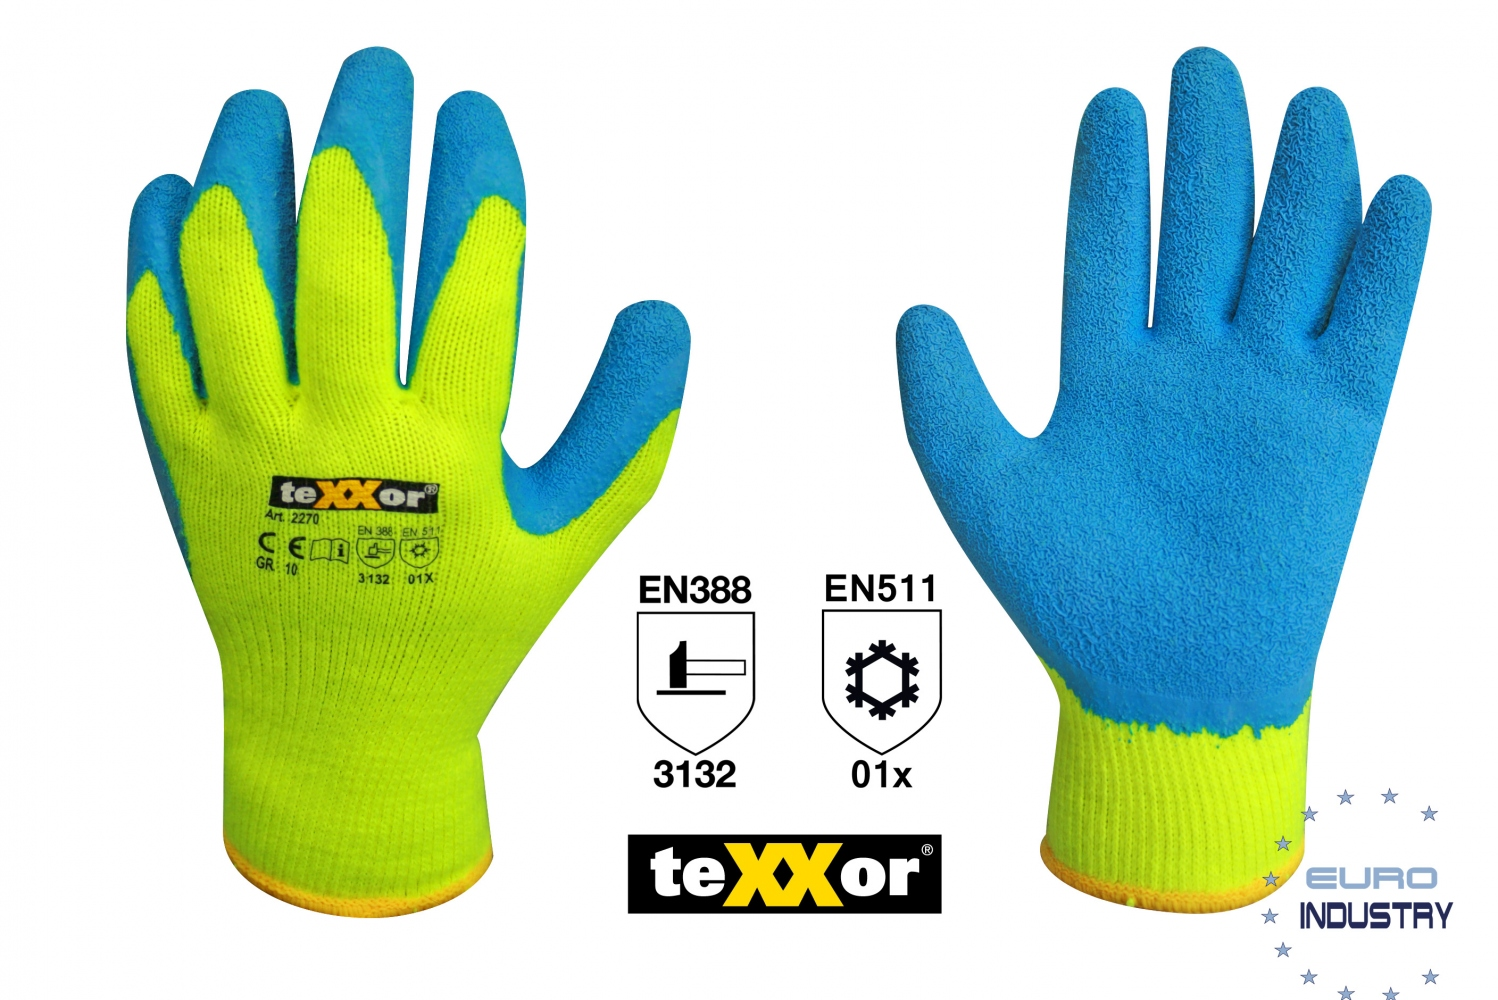 pics/Texxor/Copyright E.I.S./texxor-2270-latex-winter-gloves-yellow-8-11.jpg